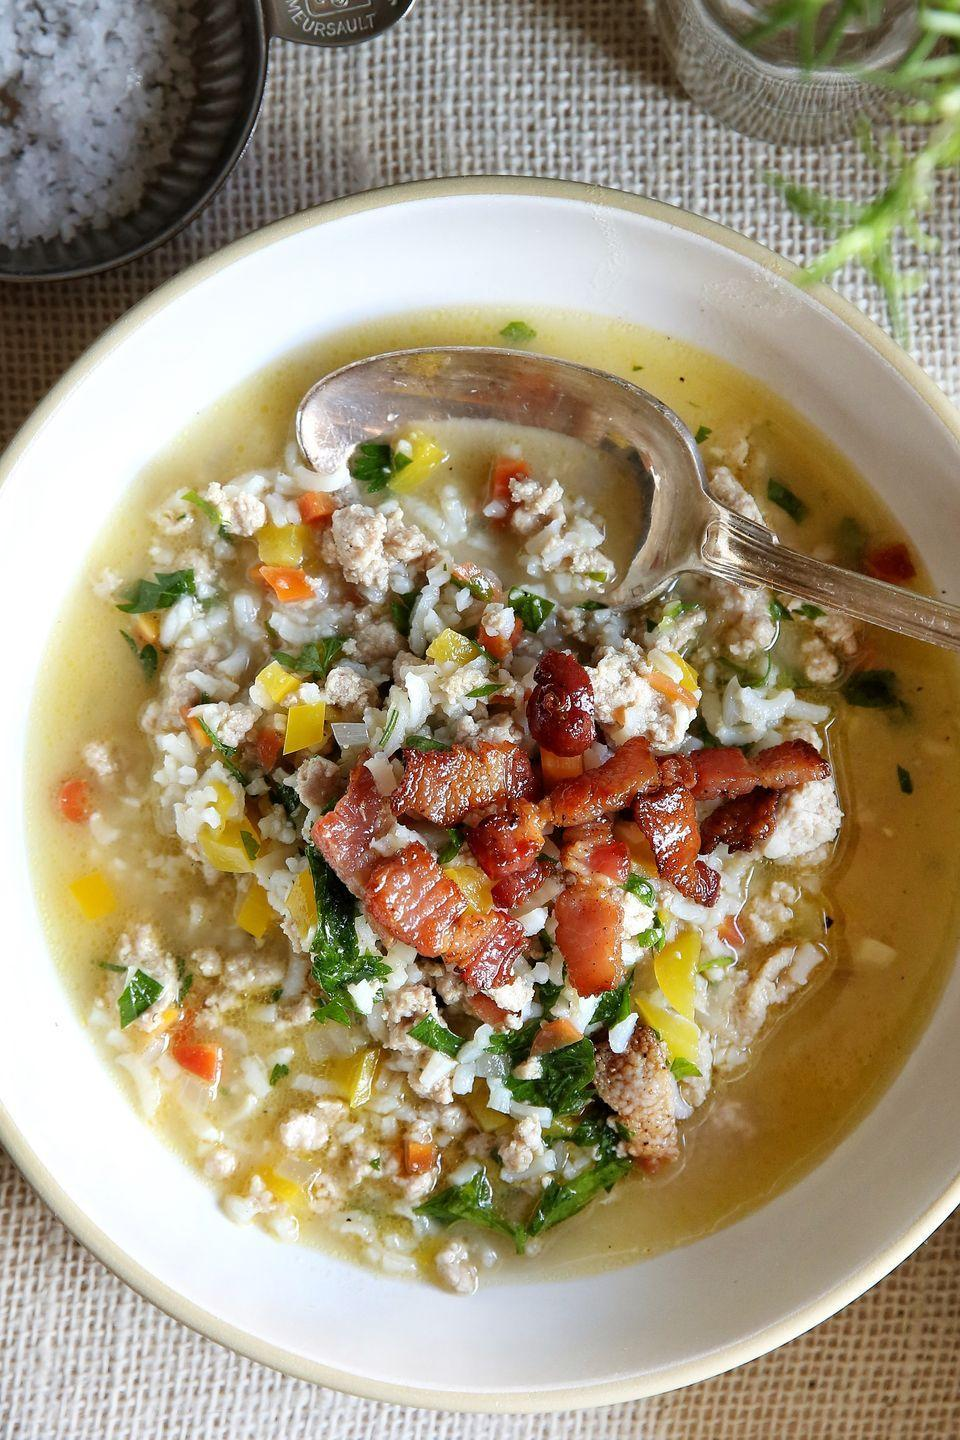 """<p>Whip up a big pot to eat all week following the big feast.</p><p>Get the recipe from <a href=""""https://www.delish.com/cooking/recipe-ideas/recipes/a50147/leftover-turkey-rice-soup-recipe/"""" rel=""""nofollow noopener"""" target=""""_blank"""" data-ylk=""""slk:Delish"""" class=""""link rapid-noclick-resp"""">Delish</a>.</p>"""